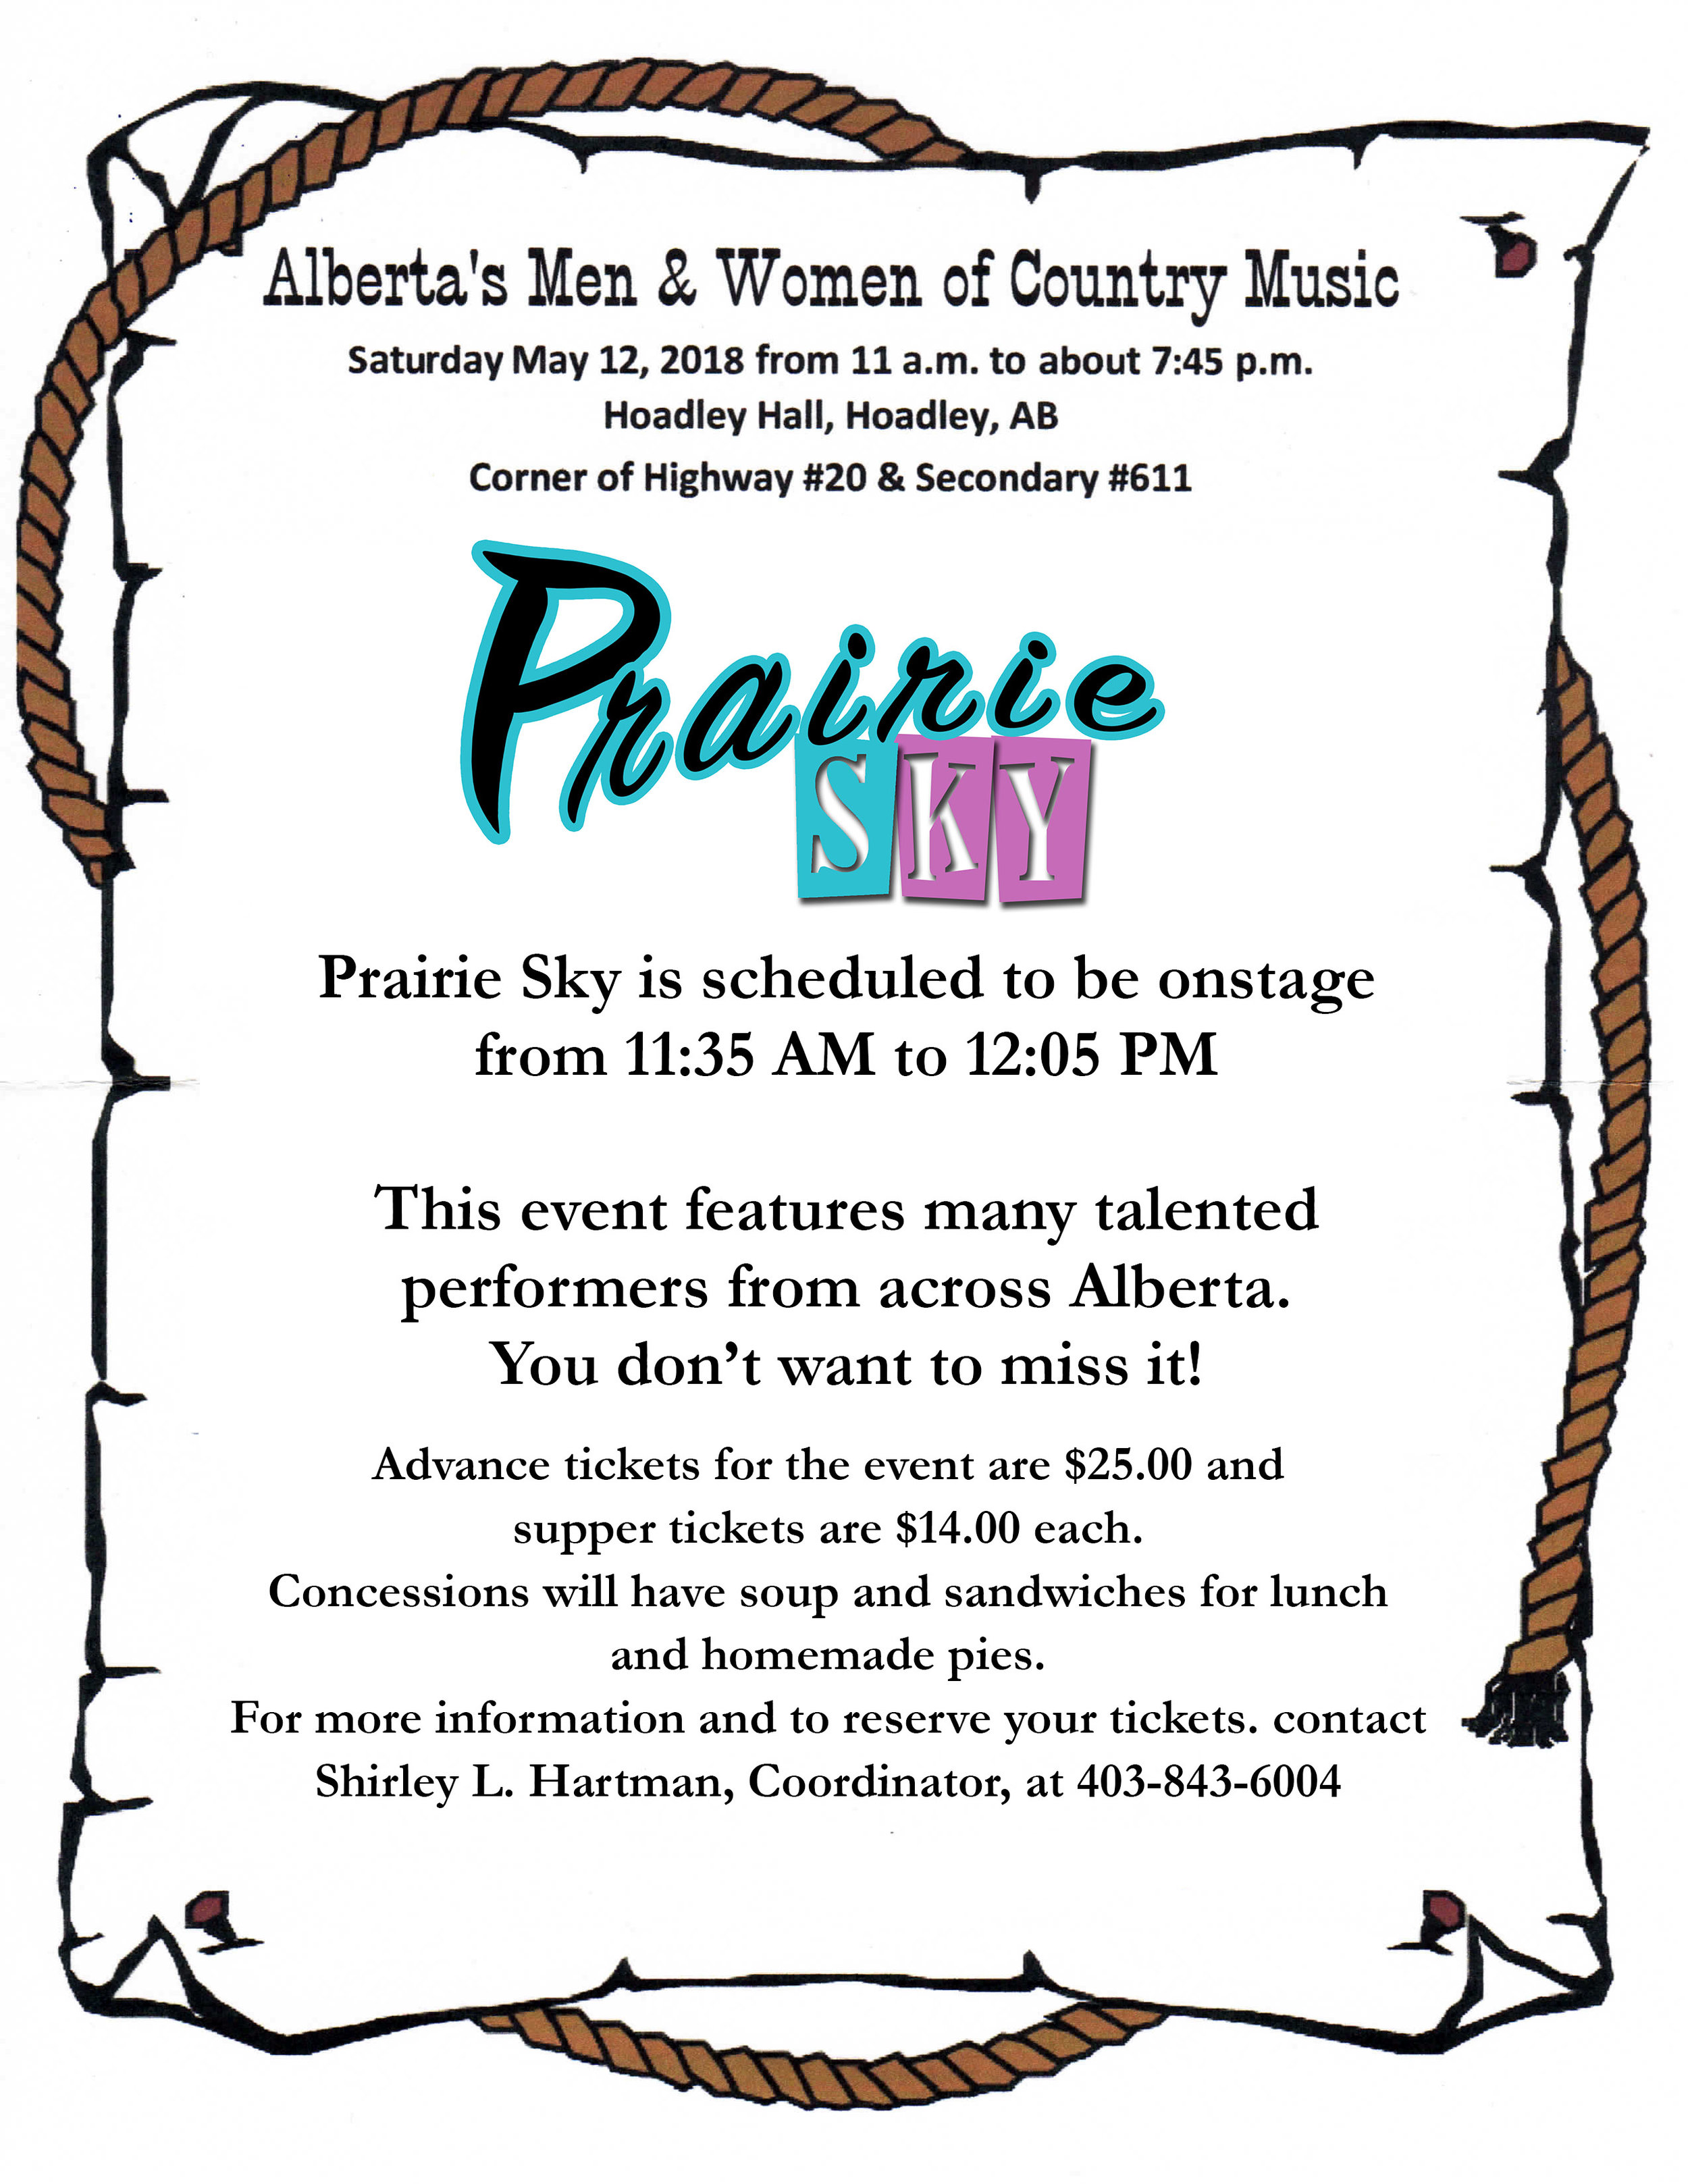 Prairie Sky - Alberta's Men & Women of Country Music